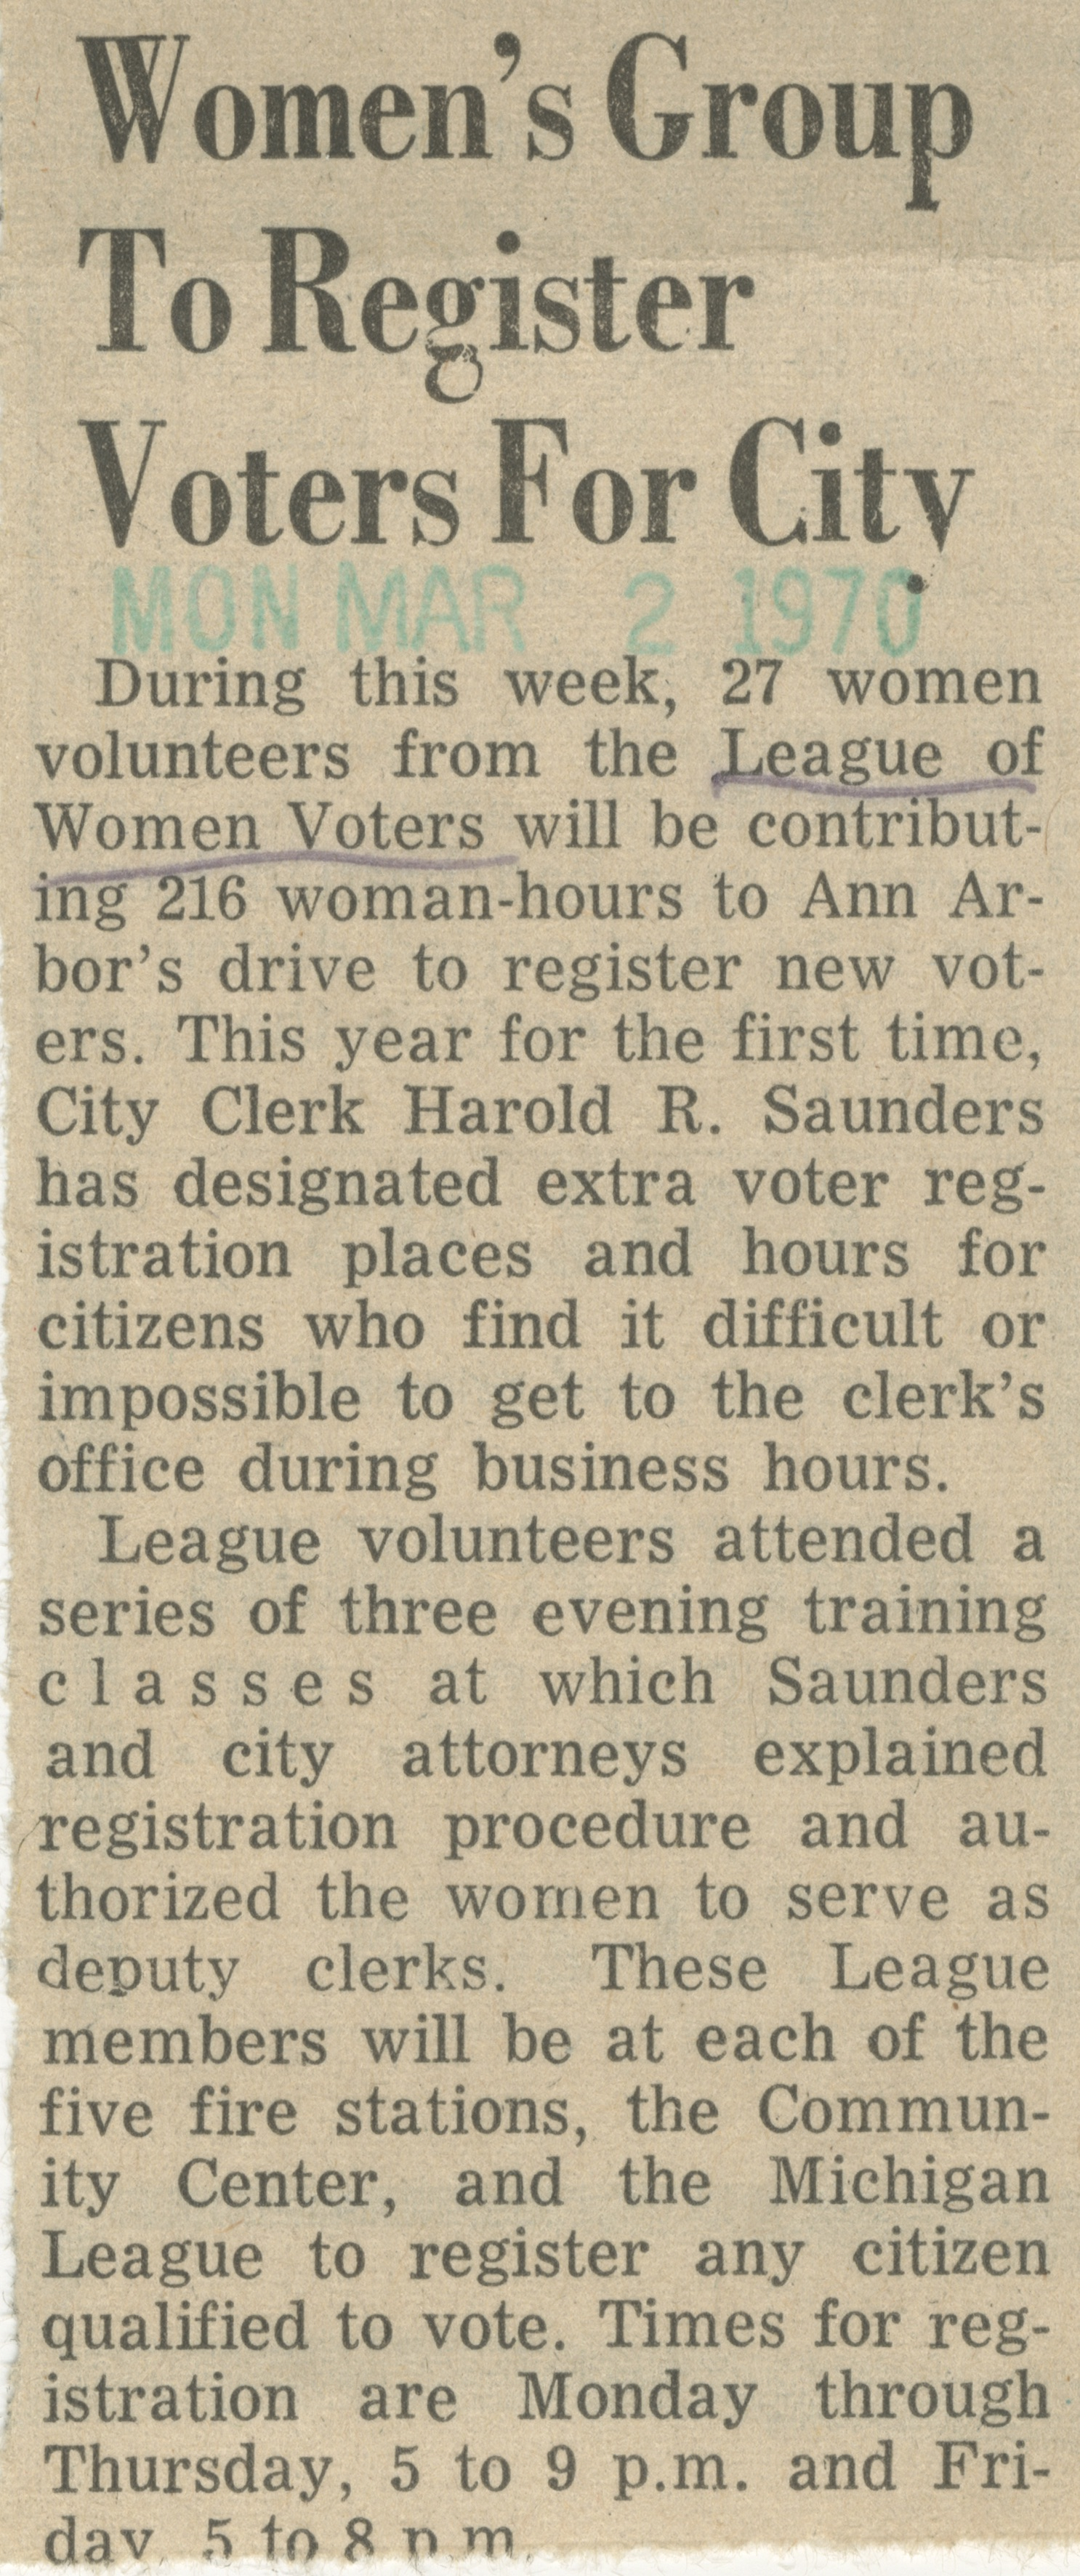 Women's Group To Register Voters For City image